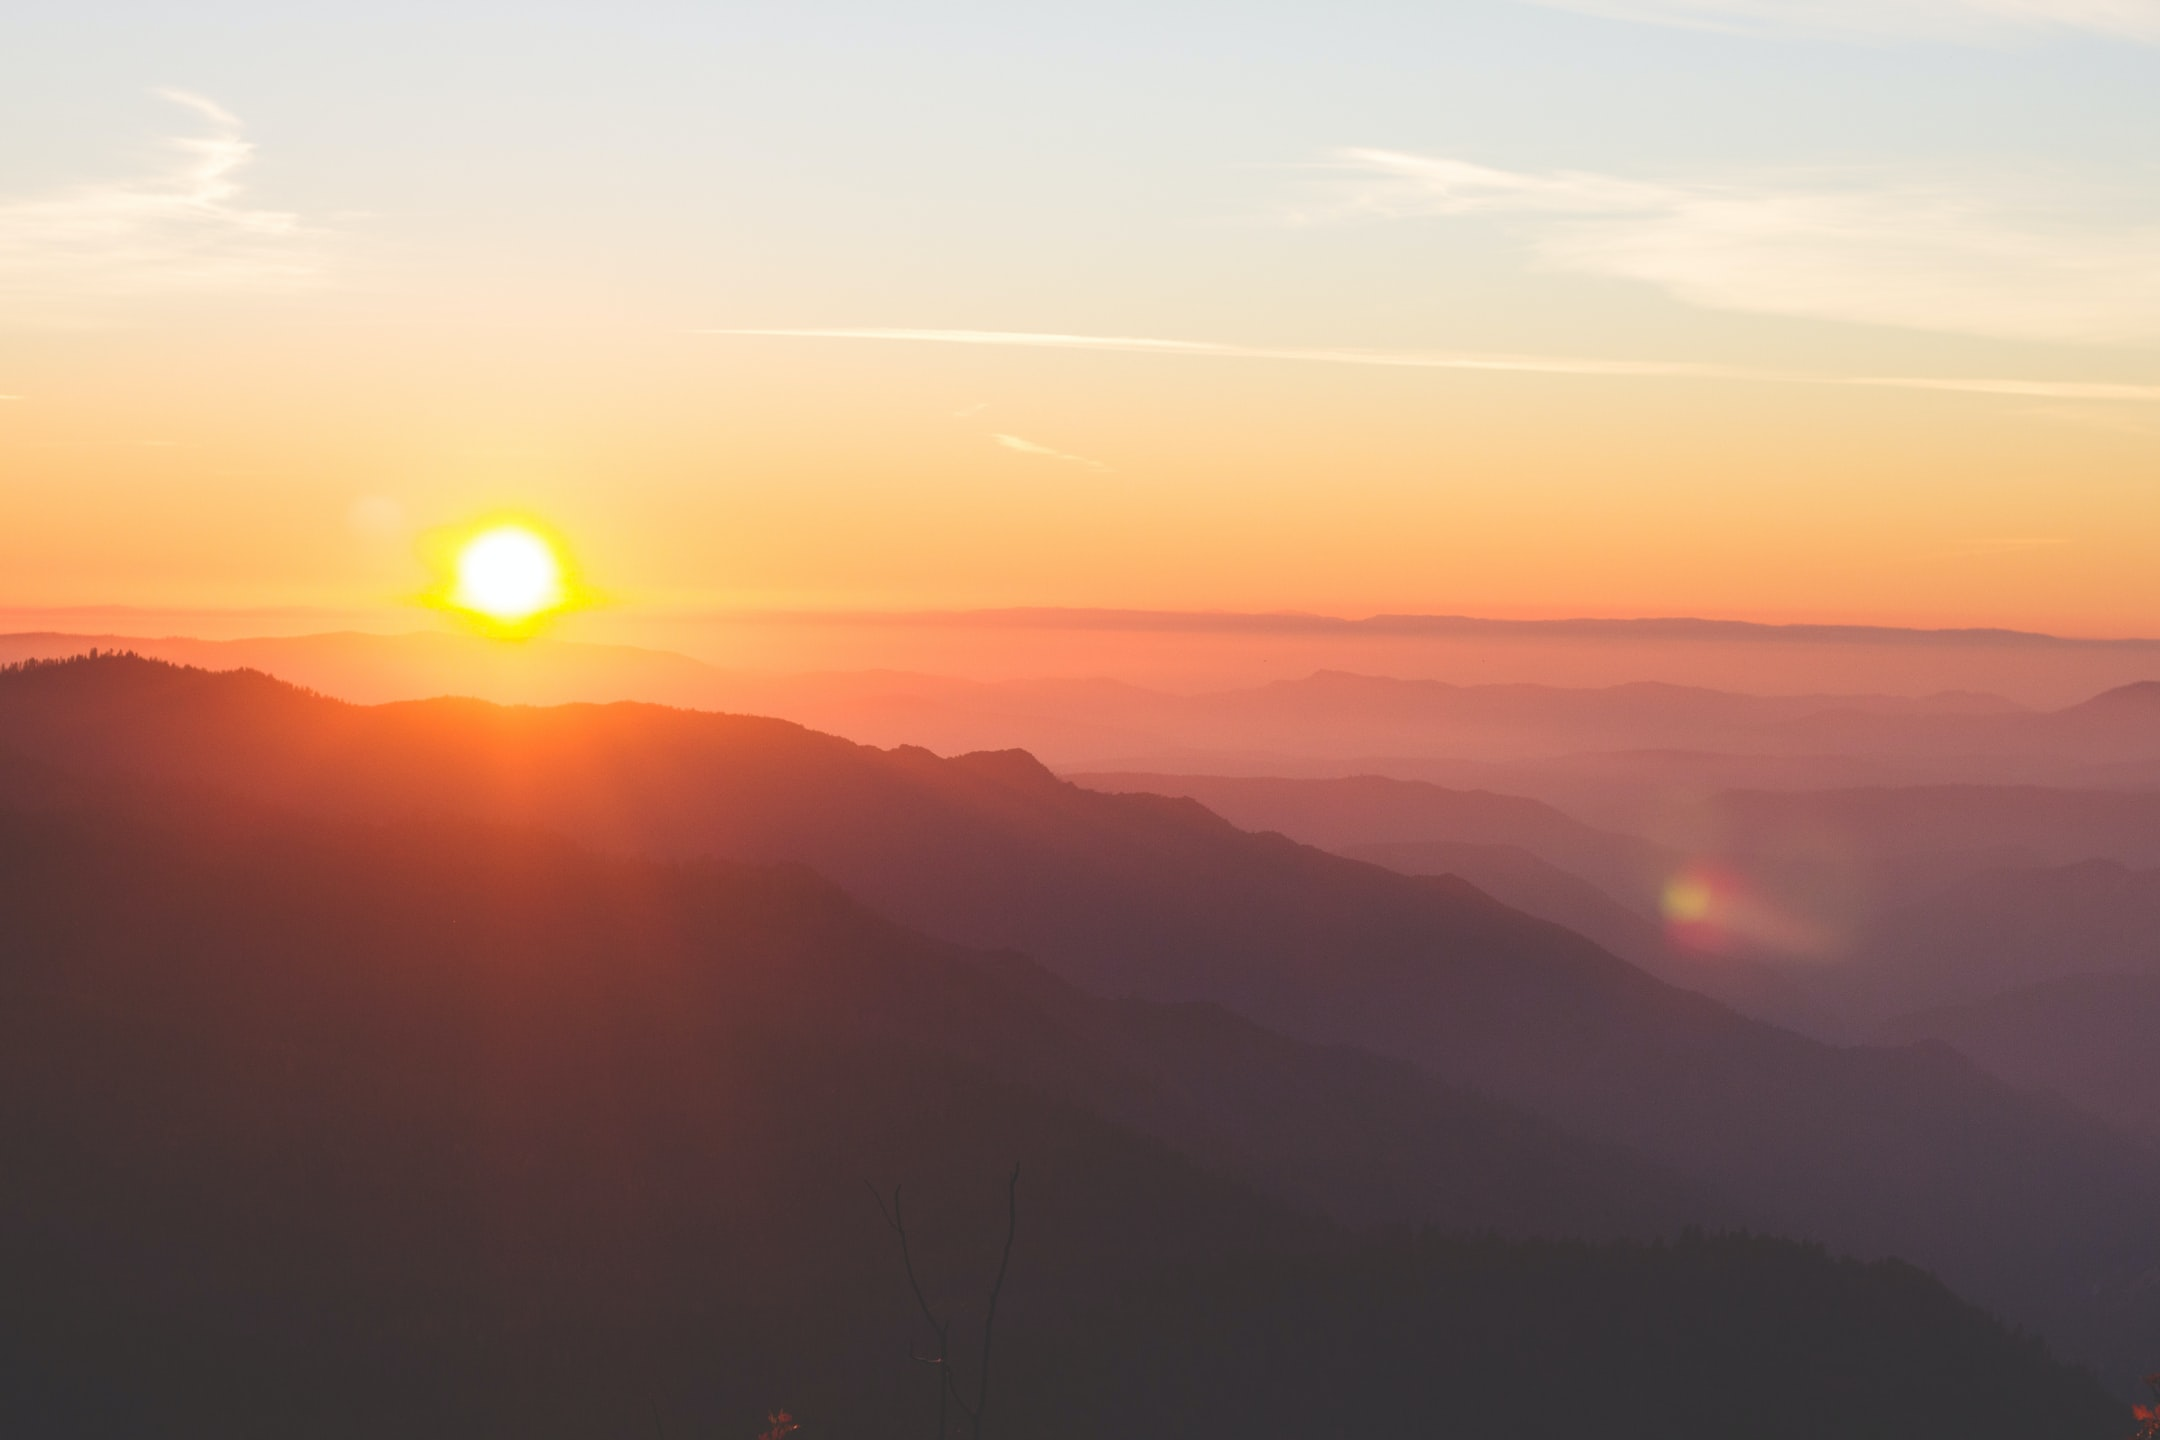 warm view of the sunrise at the summit in the dusk of morning